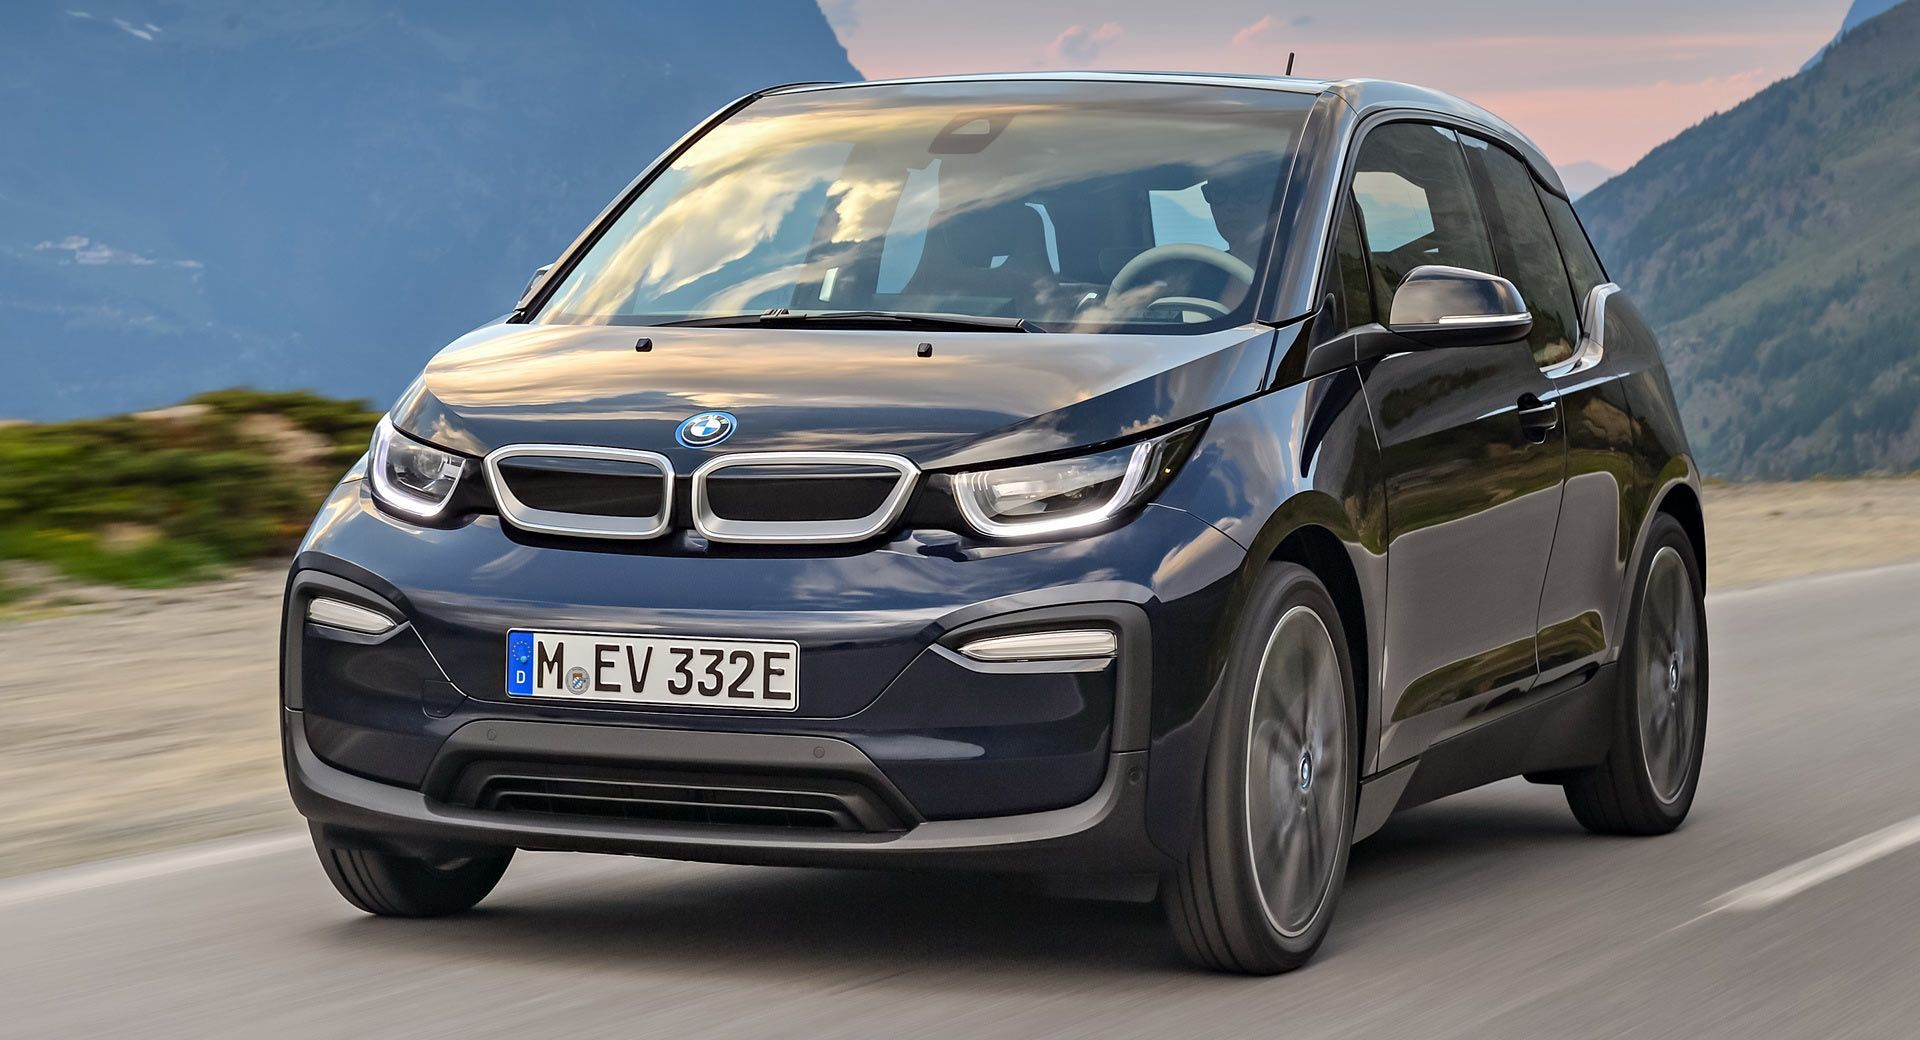 You Can Lease A Bmw I3 In The U S For As Little As 112 Per Month